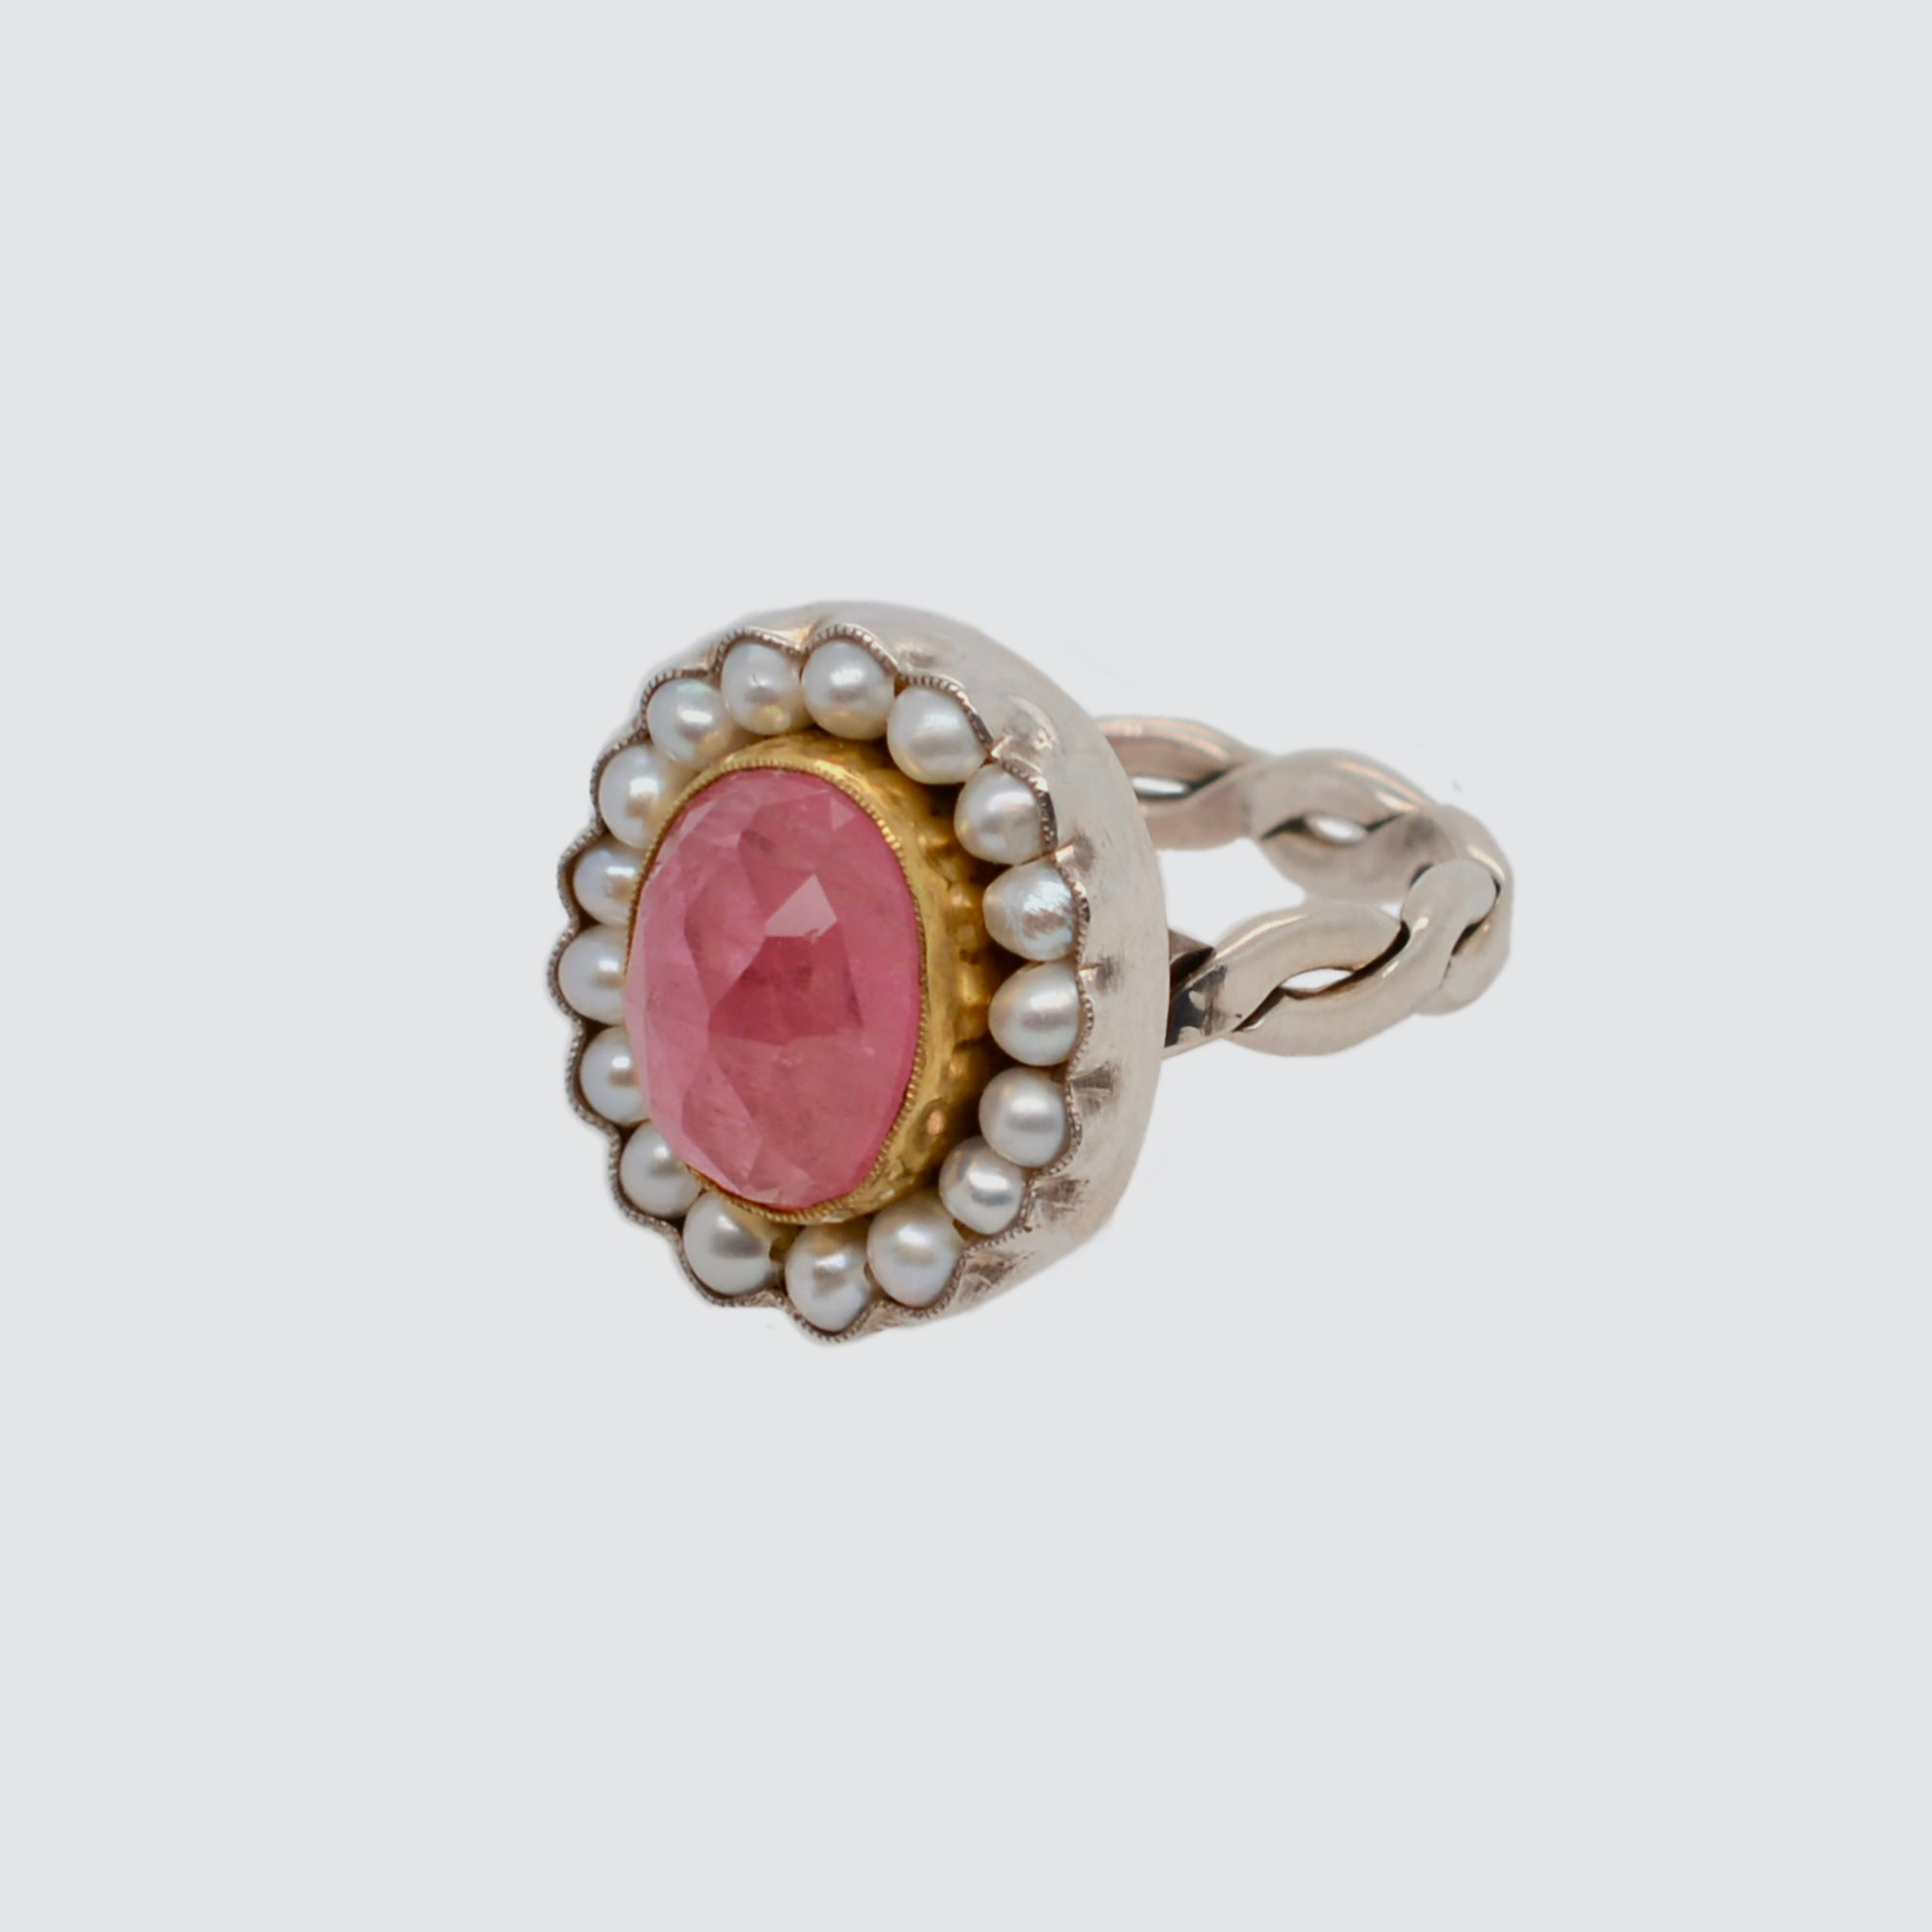 HEIRLOOM RING //  PINK TOURMALINE